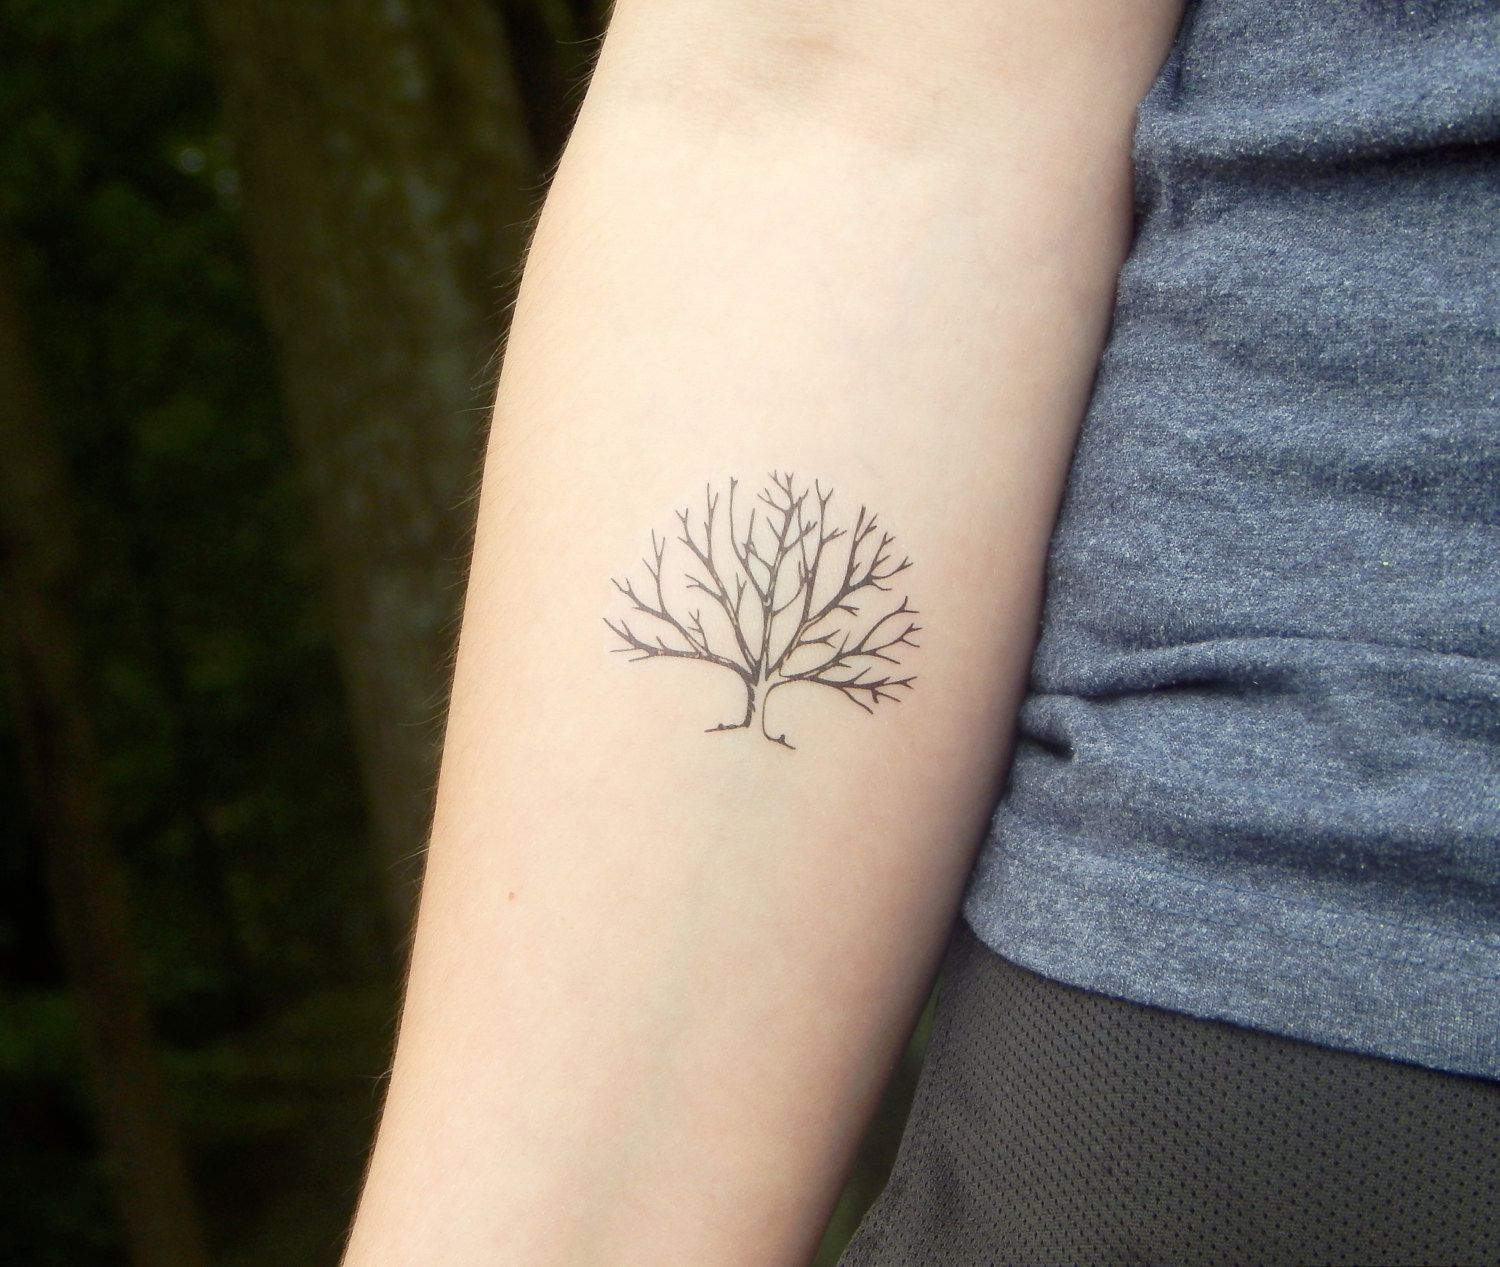 Temporary Tattoo - Tree Tattoo - Tree Branch Tattoo ...